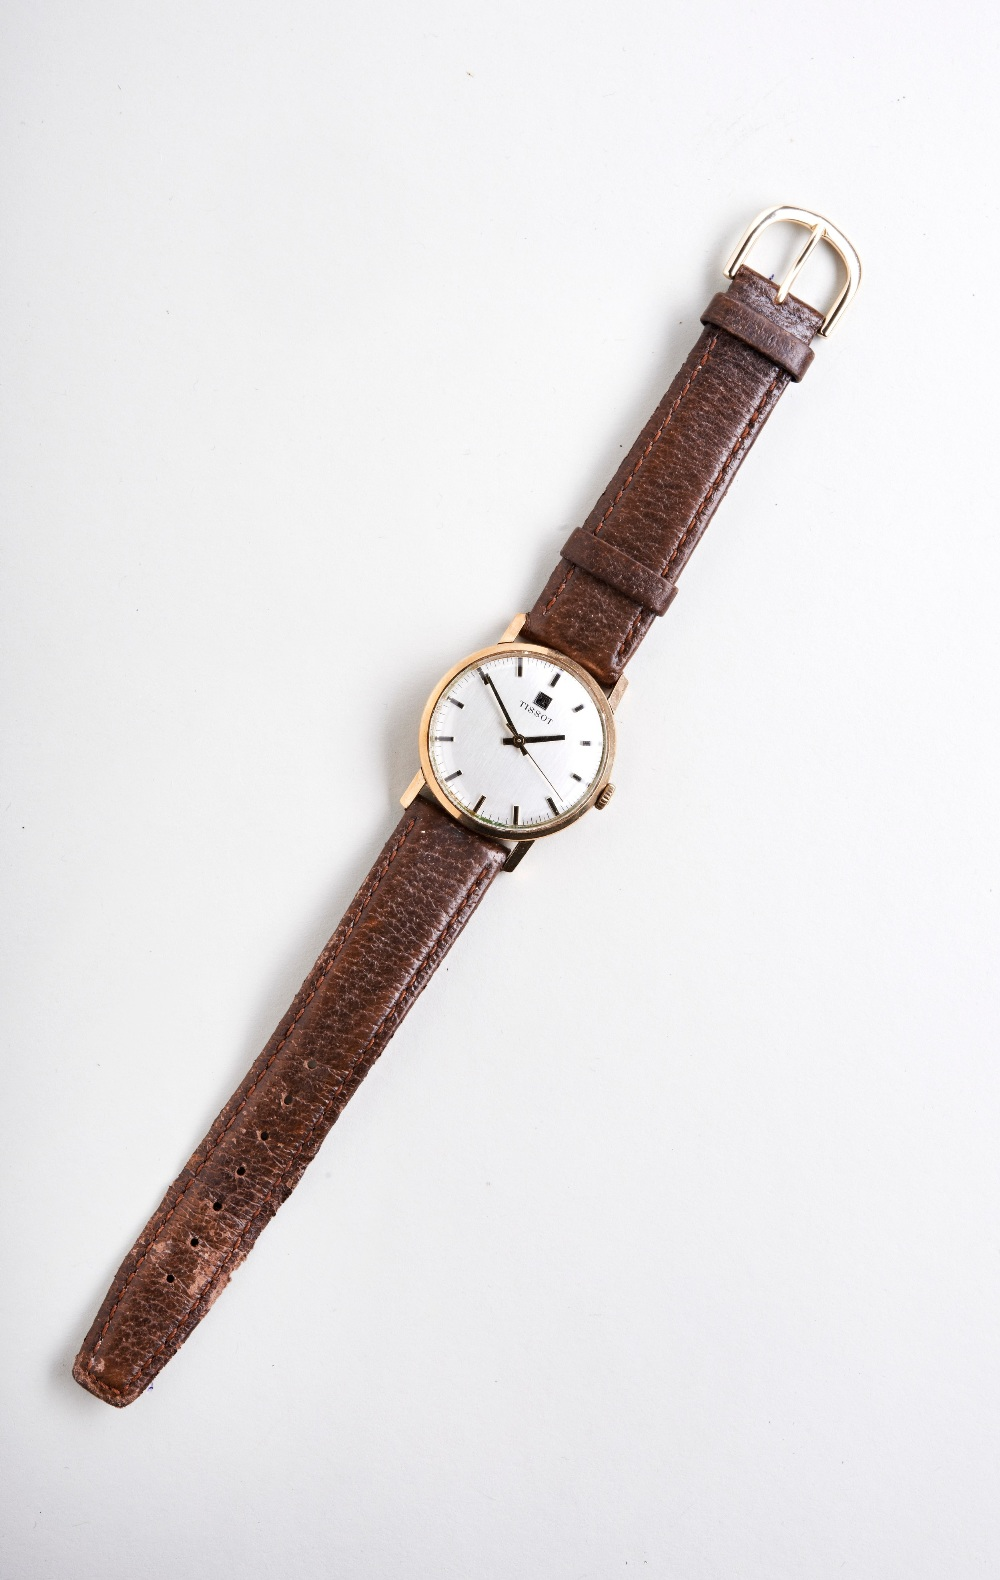 TISSOT 9CT MAN'S WRISTWATCH, 1970s, the plain slivered dial with baton numerals and later leather - Image 2 of 3